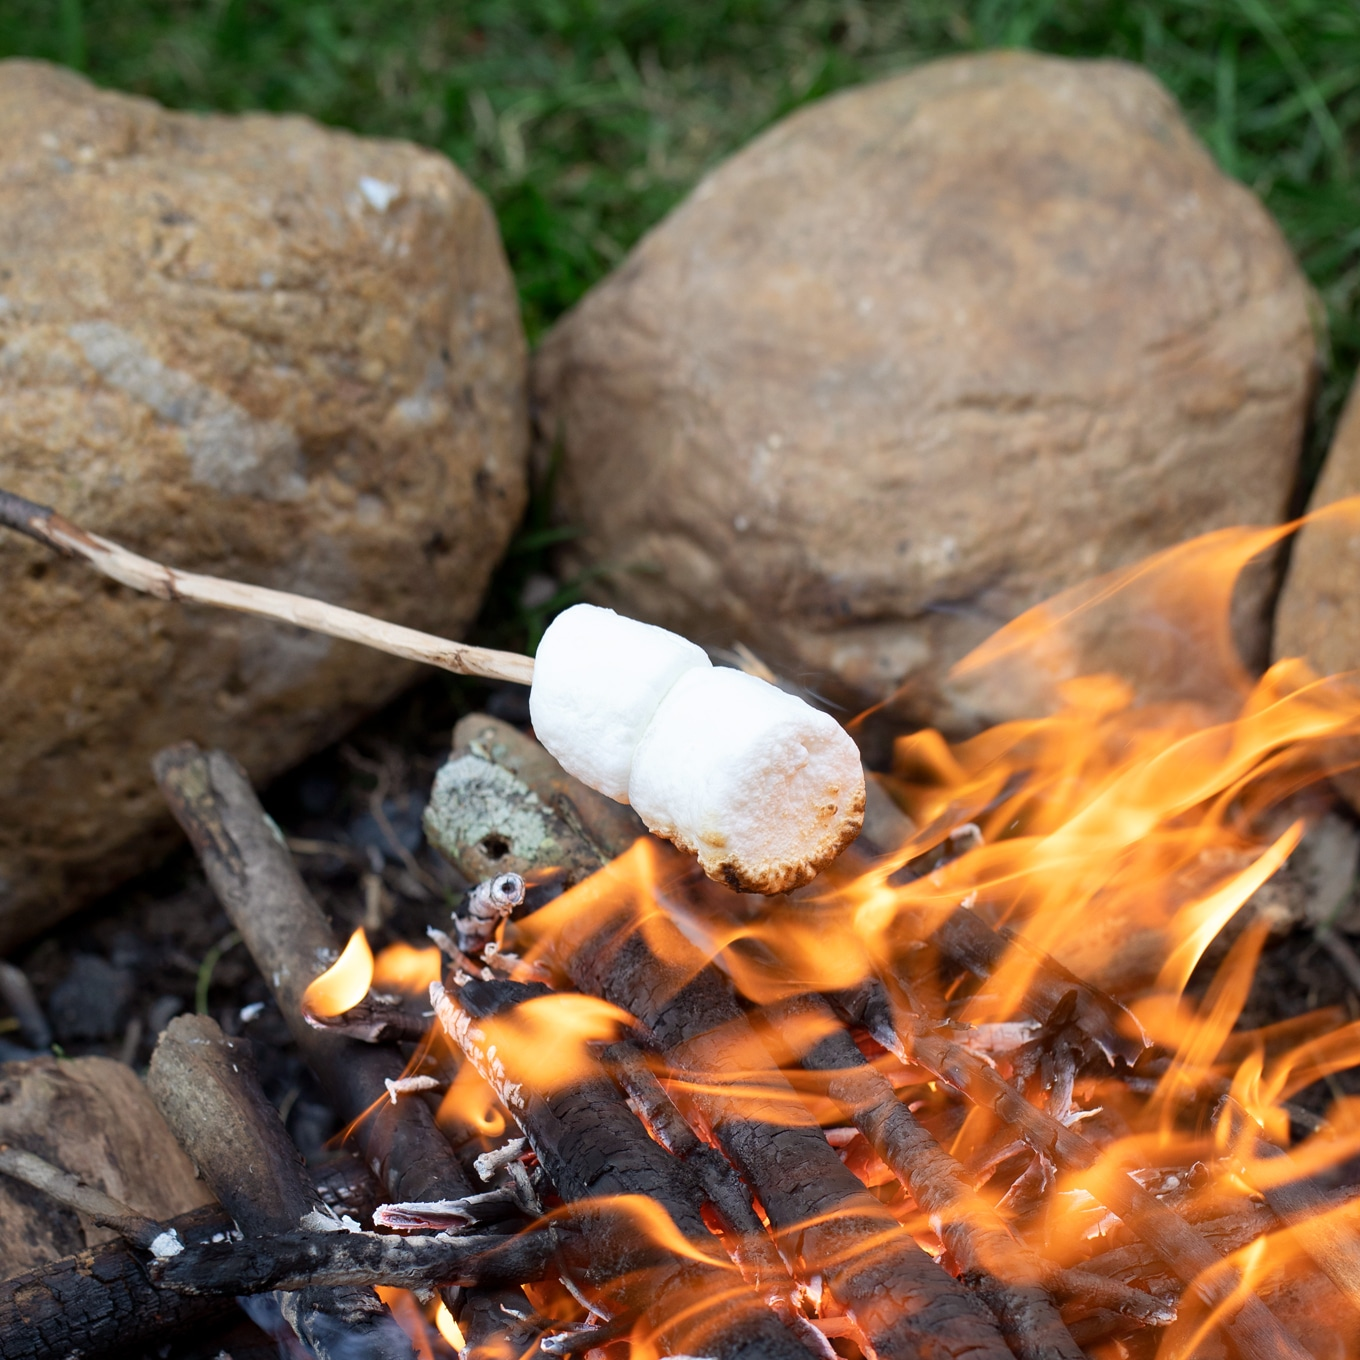 Roasting S'mores Over a Campfire